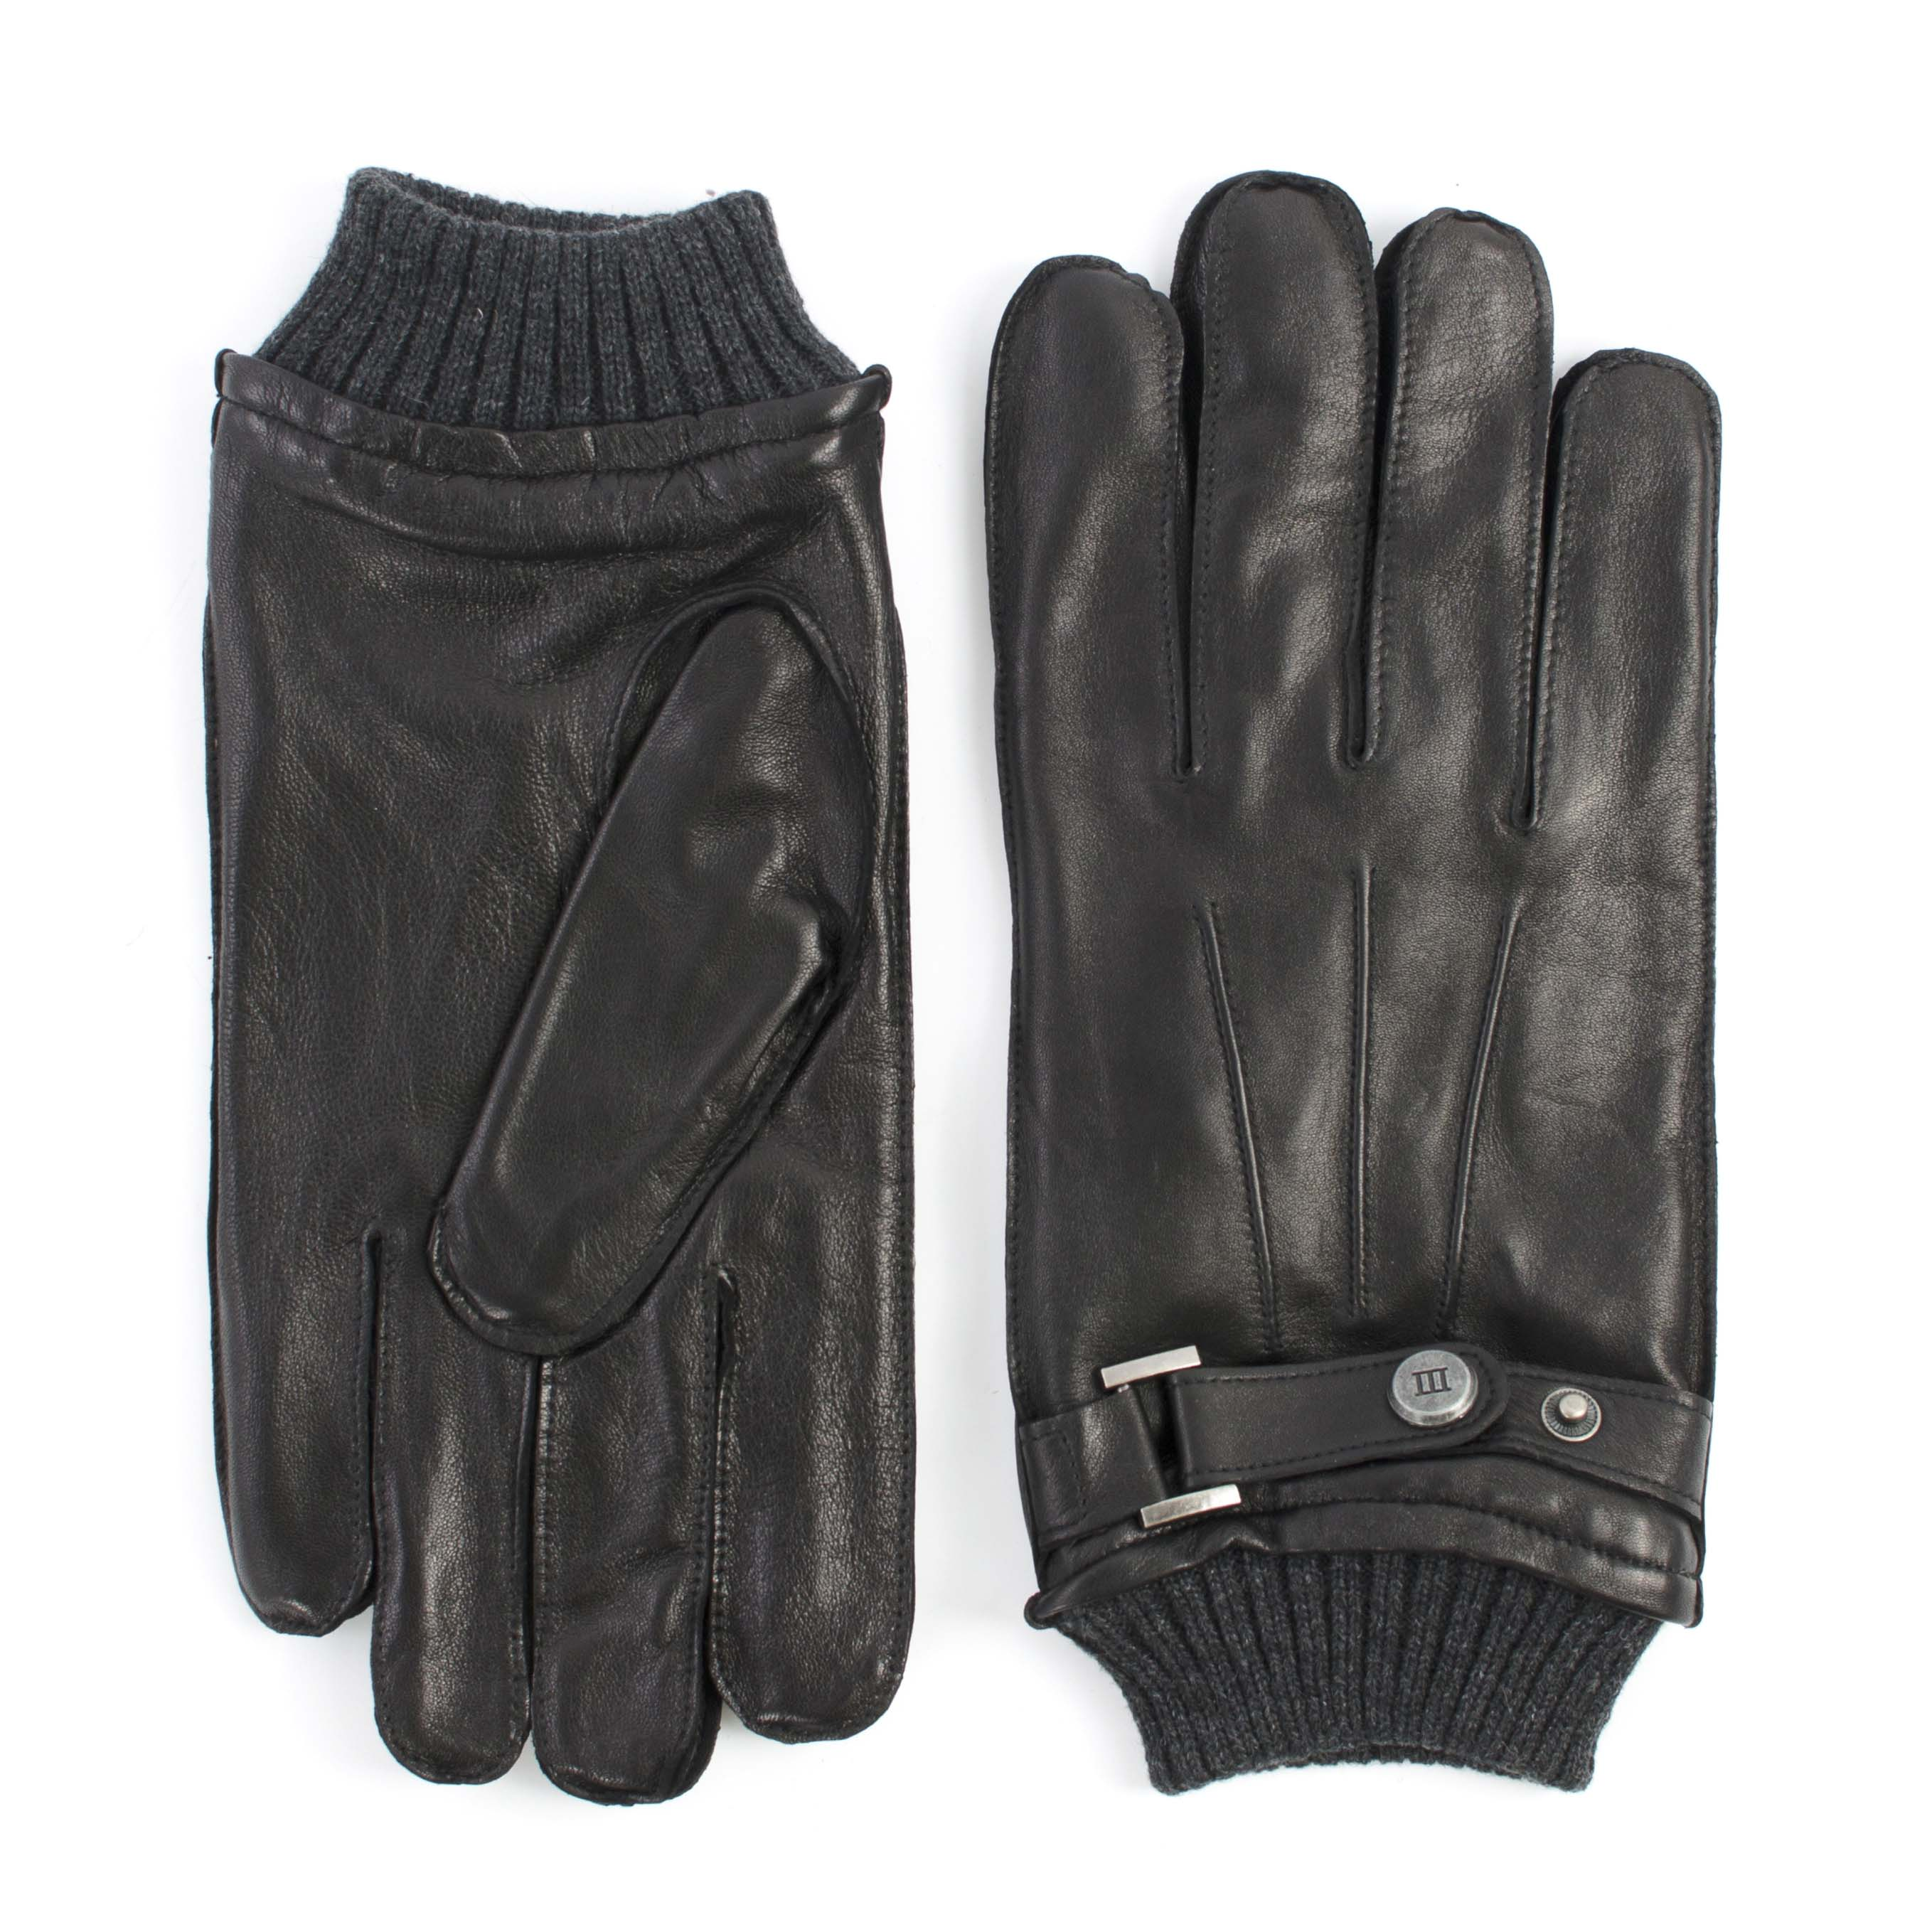 Gloves black analine sheepleather with knitted cuff